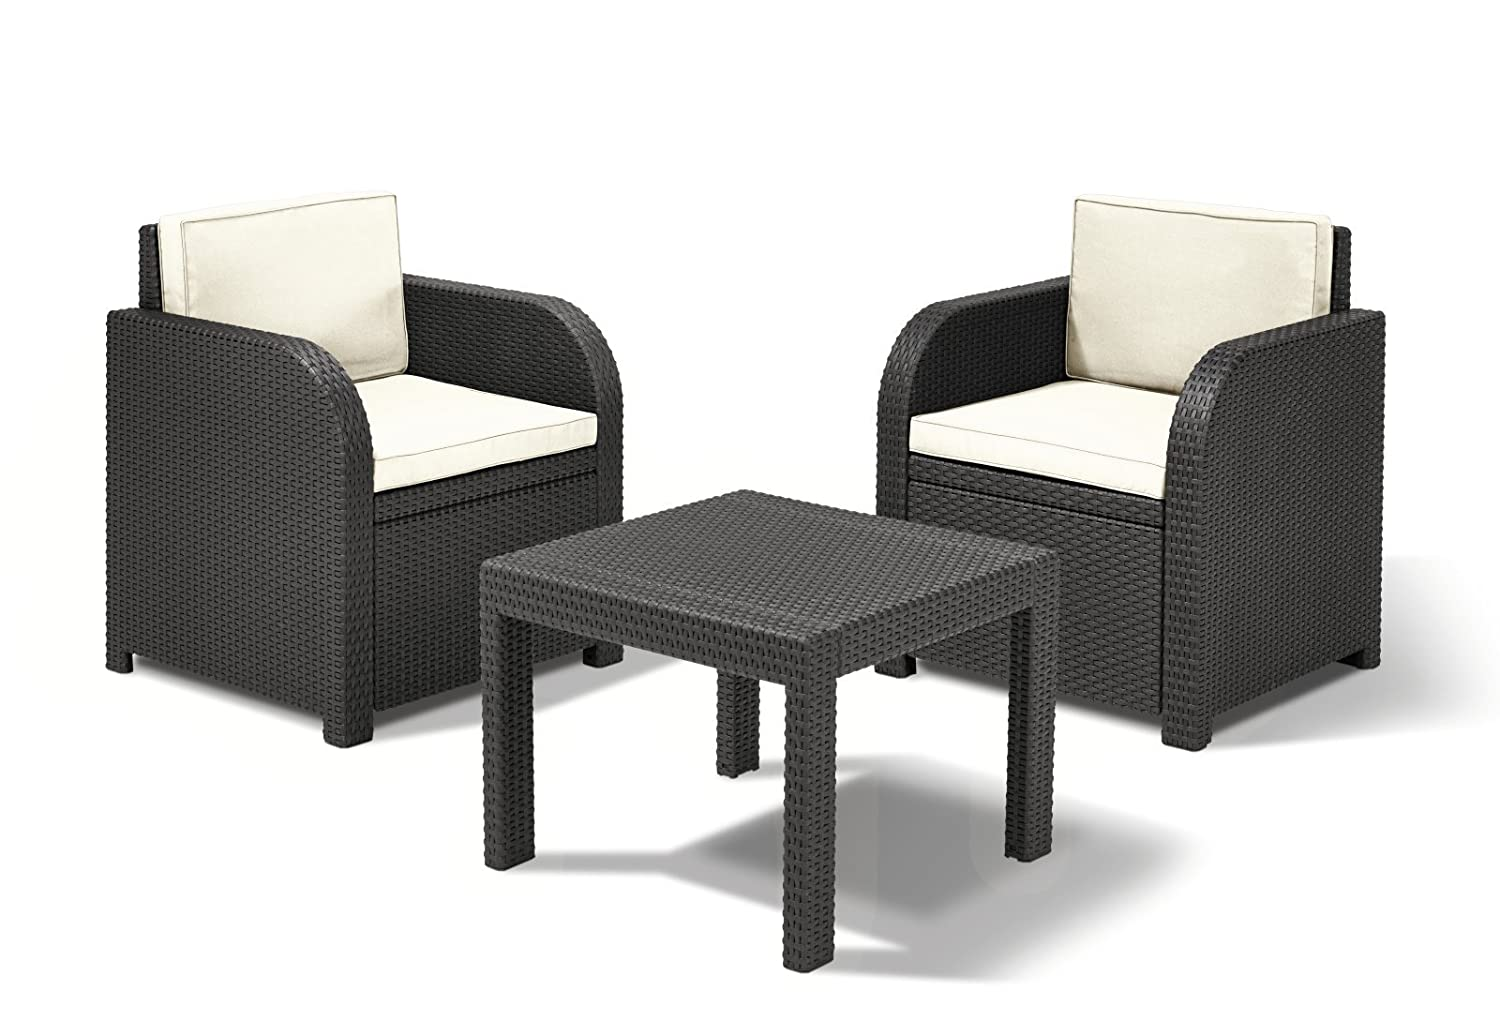 sitzgruppe florida rattan optik graphit 3 teilig kaufen. Black Bedroom Furniture Sets. Home Design Ideas